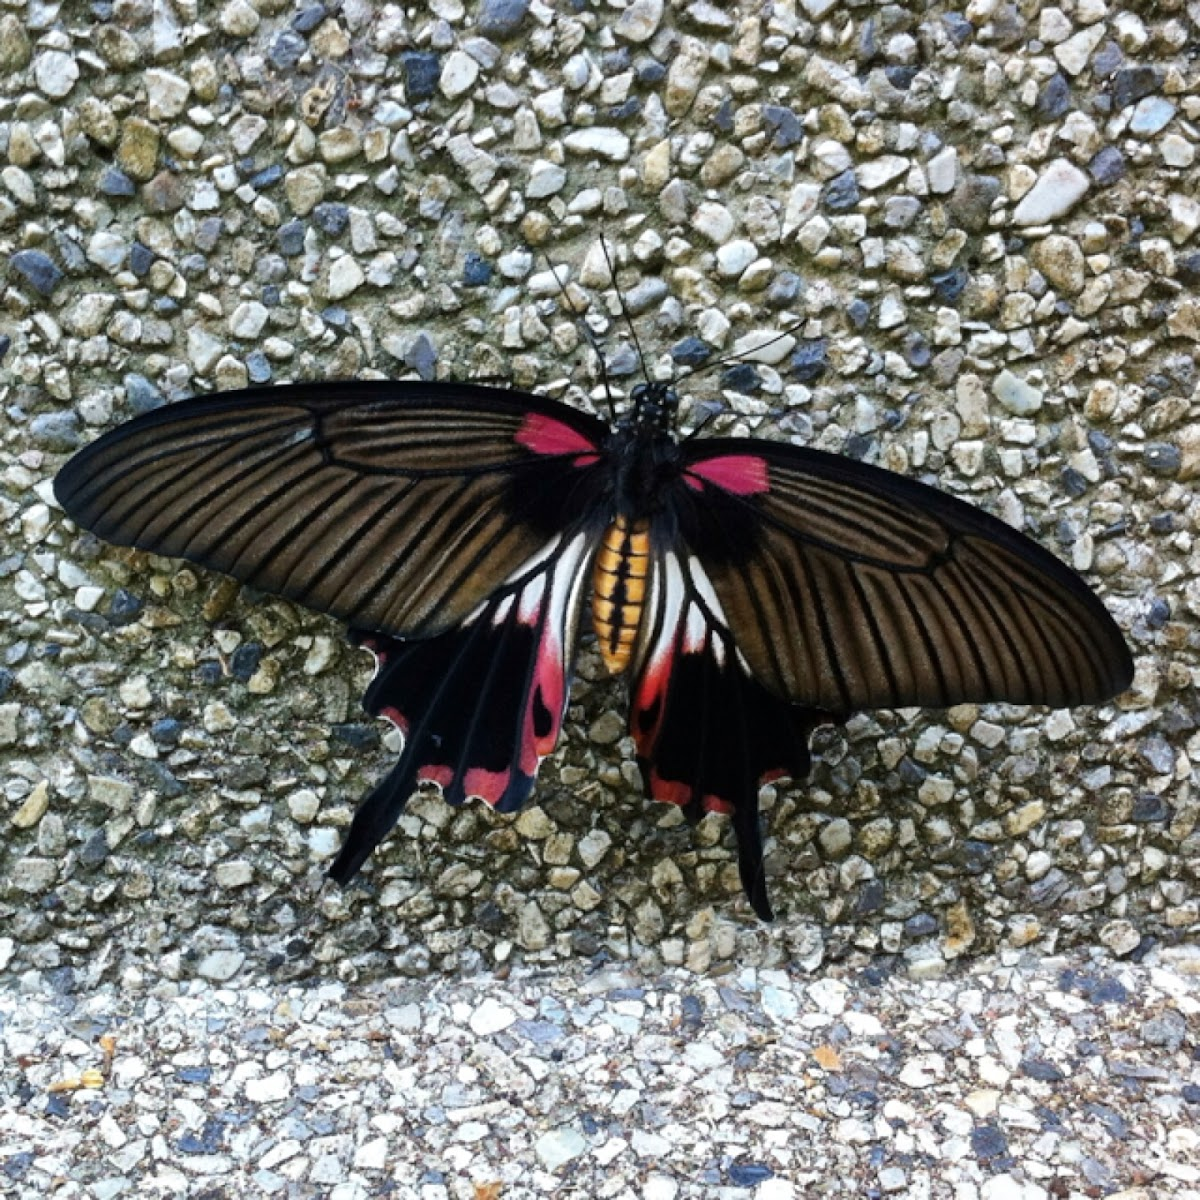 The Great Mormon Butterfly